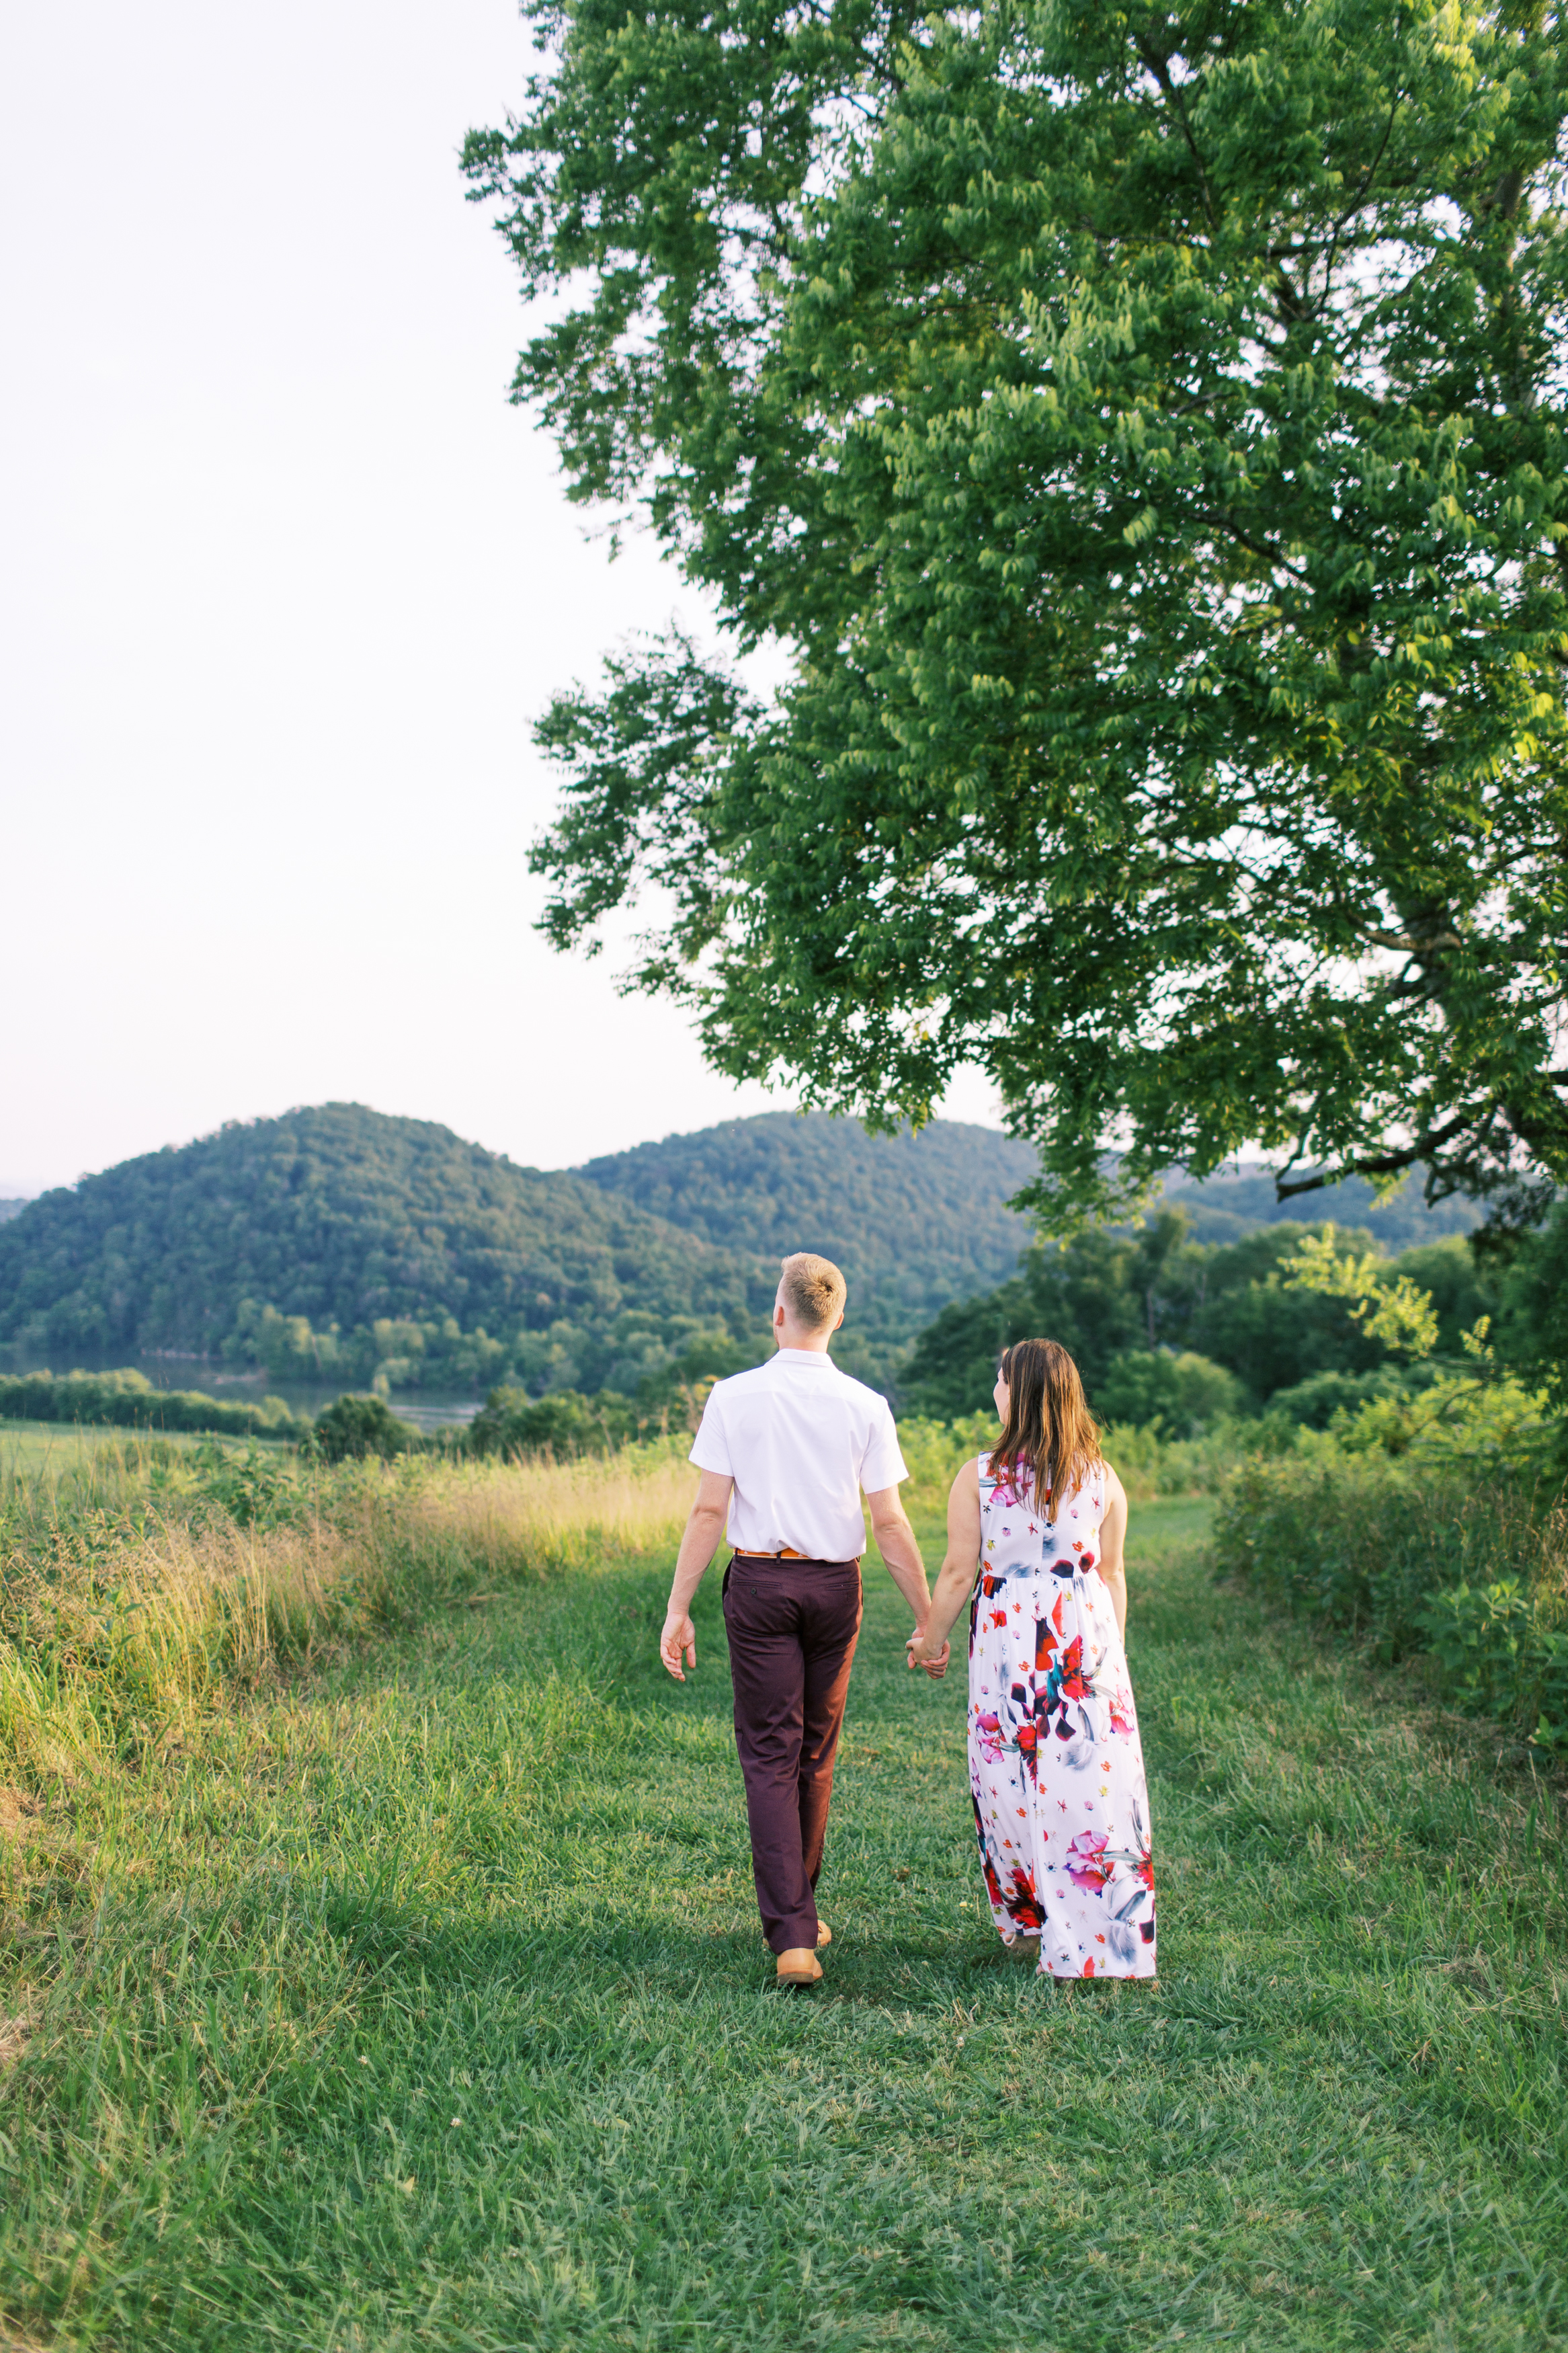 Mary_Carlton_Engagement_Smoky_Mountain_Knoxville_Abigail_Malone_Photography-124.jpg